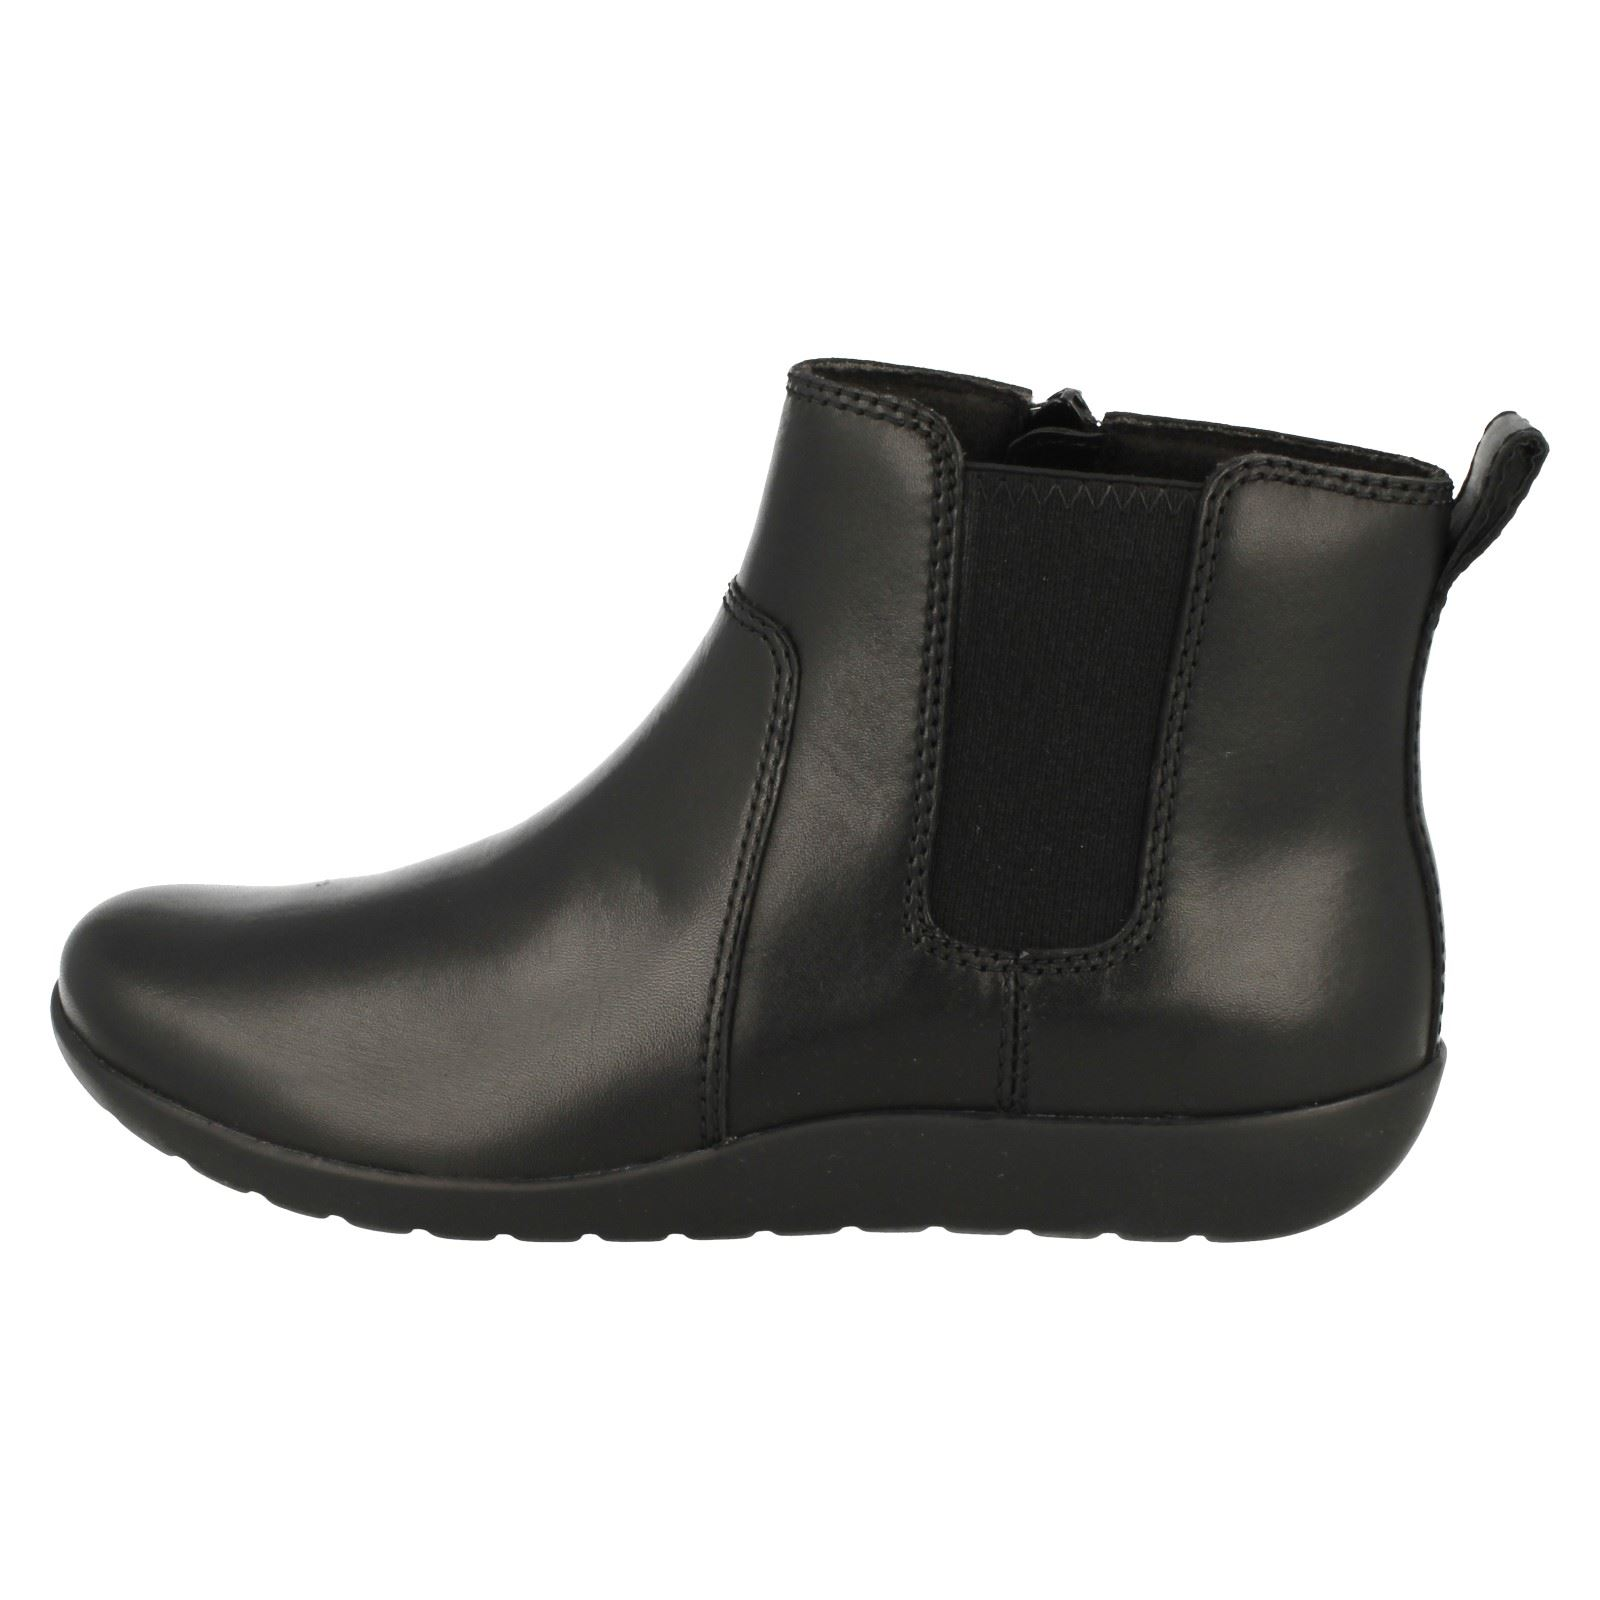 Clarks Medora Grace women's Low Ankle Boots in Clearance Excellent dDm0M8Tfm